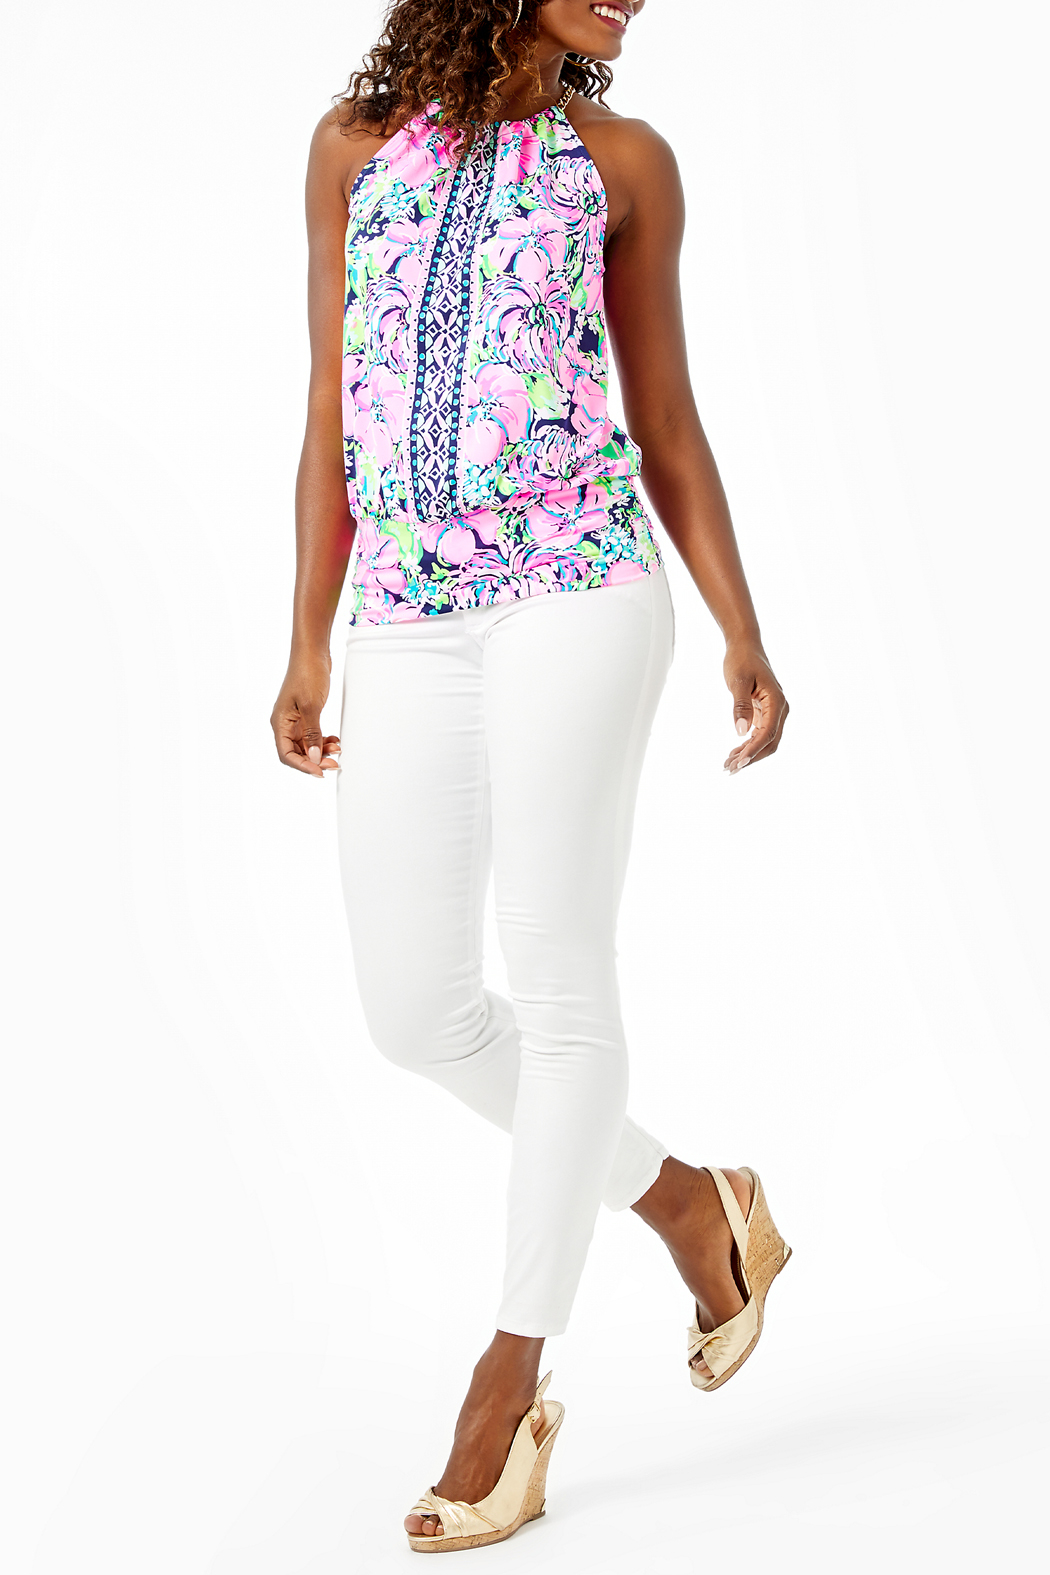 Lilly Pulitzer  Bowen Top - Back Cropped Image